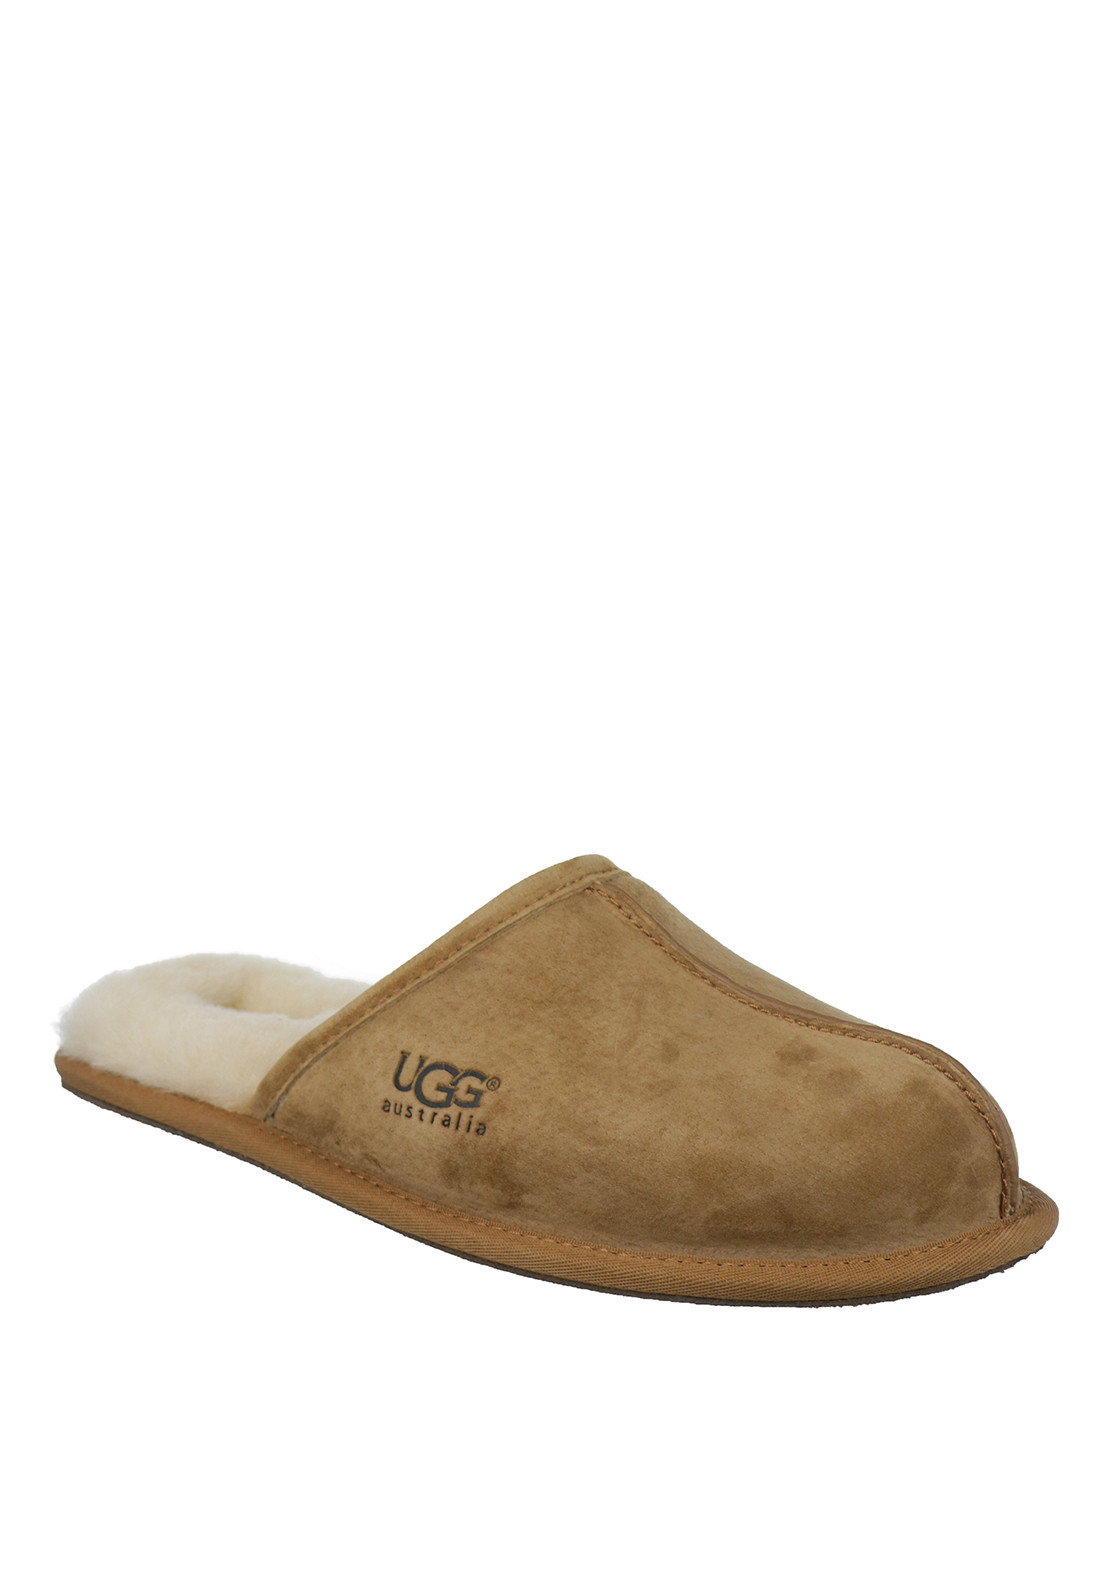 32b69de70c668 Ugg Australia Mens Scuff Suede Slippers, Chestnut. Be the first to review  this product